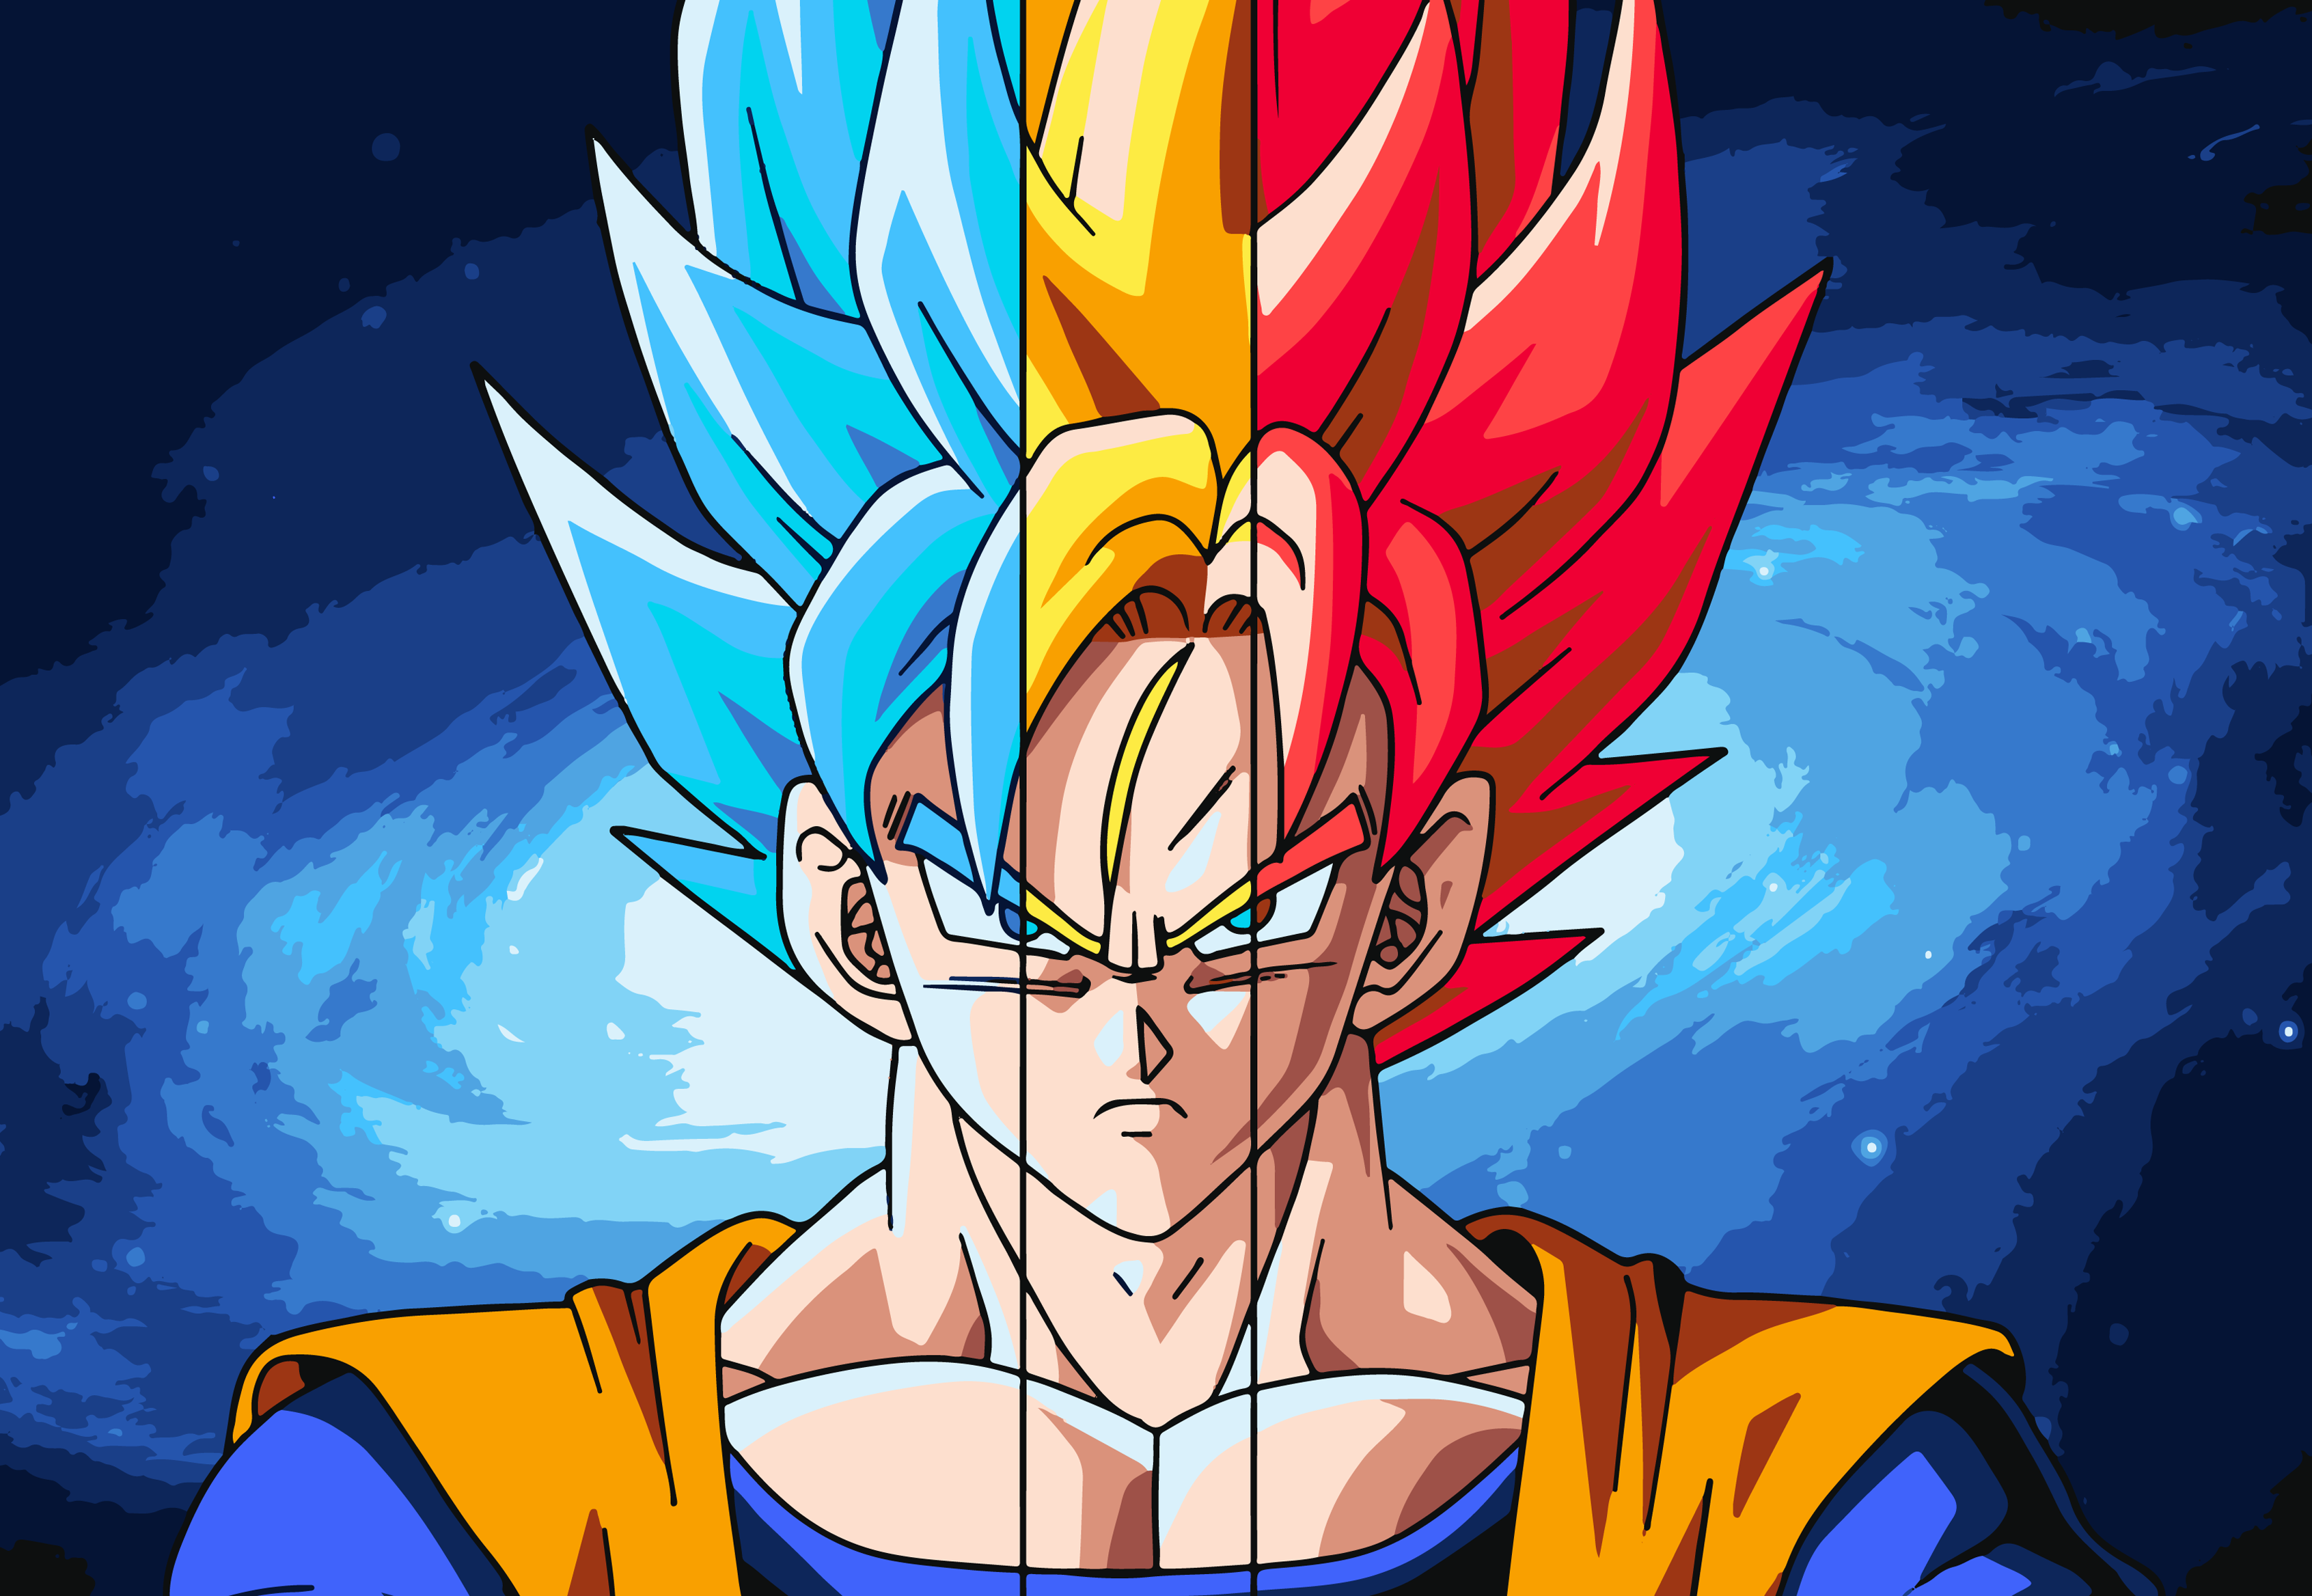 88 Super Saiyan Hd Wallpapers Background Images Wallpaper Abyss